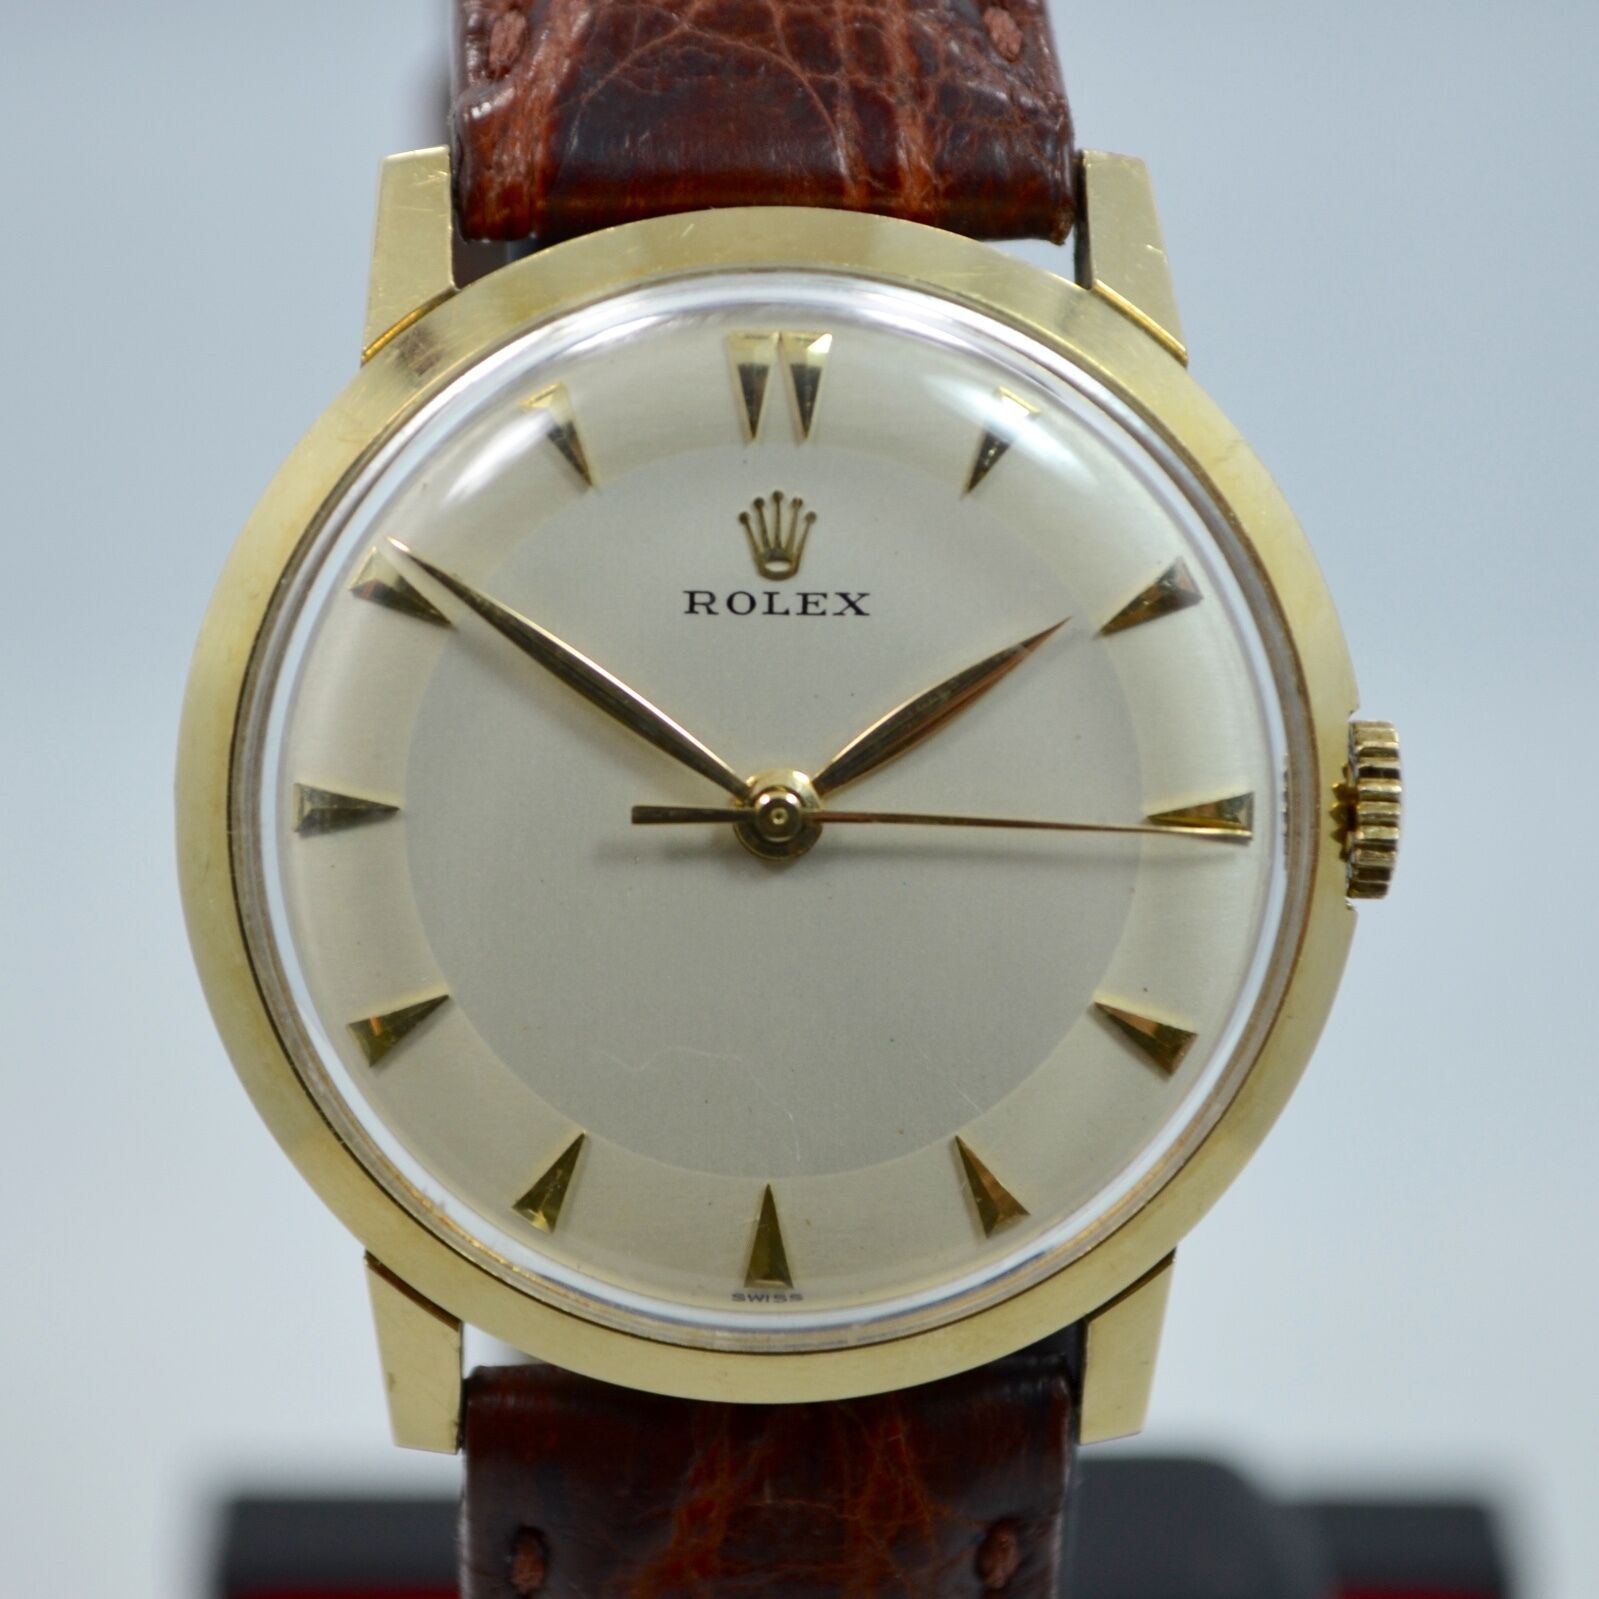 Vintage Rolex Watches Vintage Rolex 14k Yellow Gold Dress Formal Silver Dial